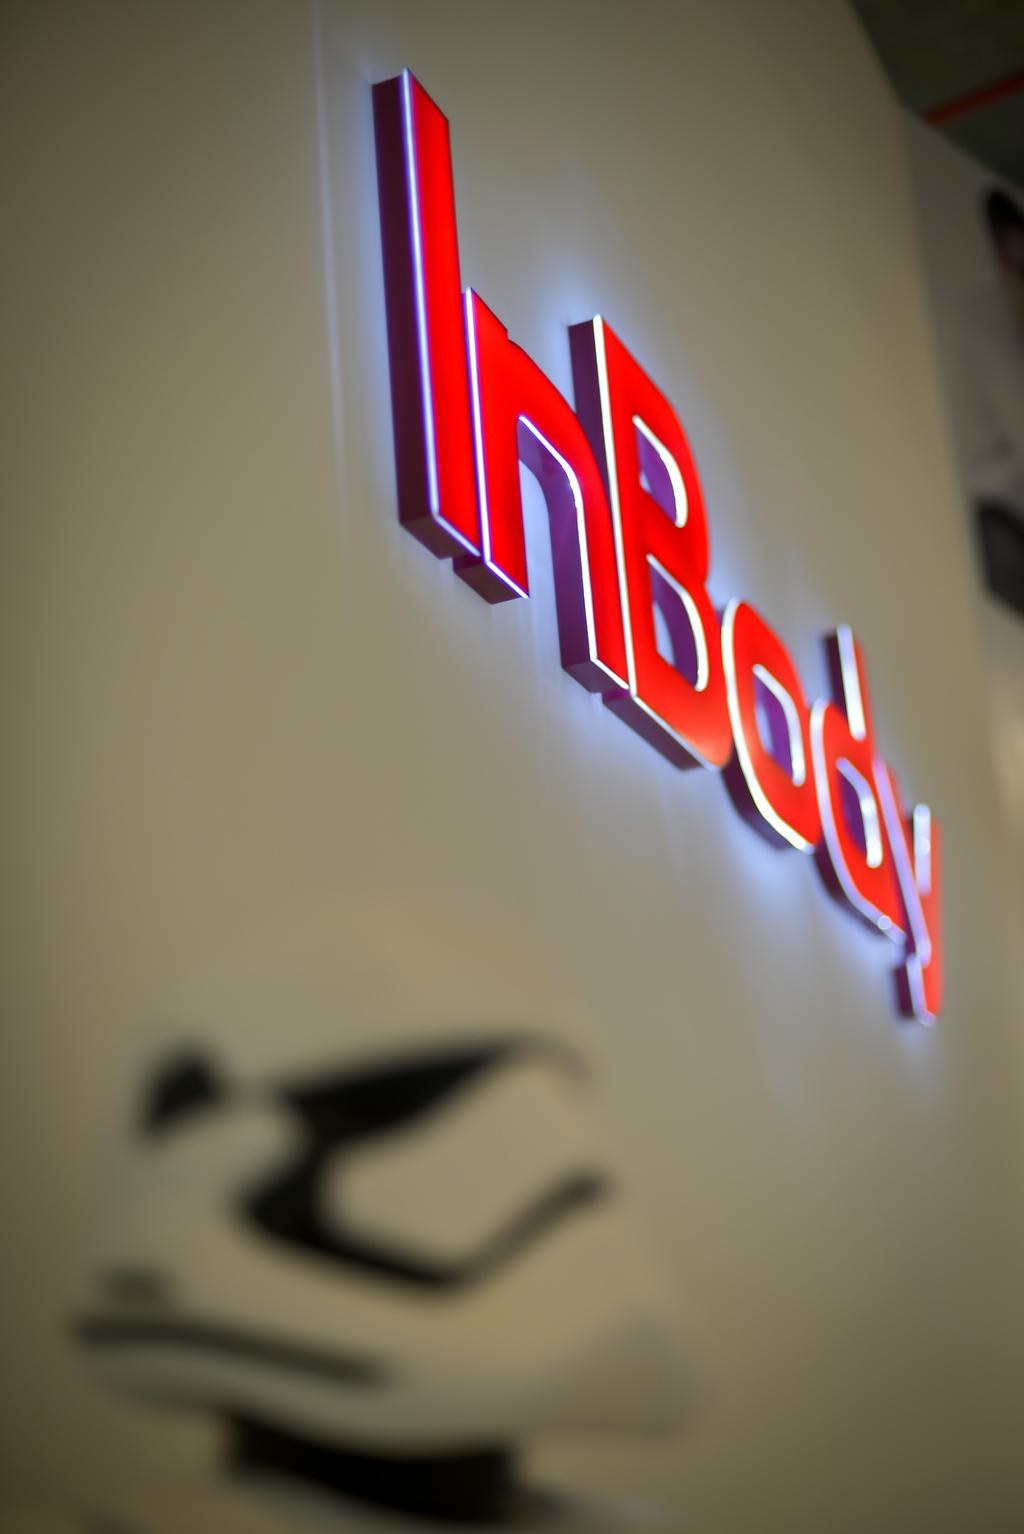 Inbody Asia, Commercial, Interior Designer, Dot Works, Modern, Emblem